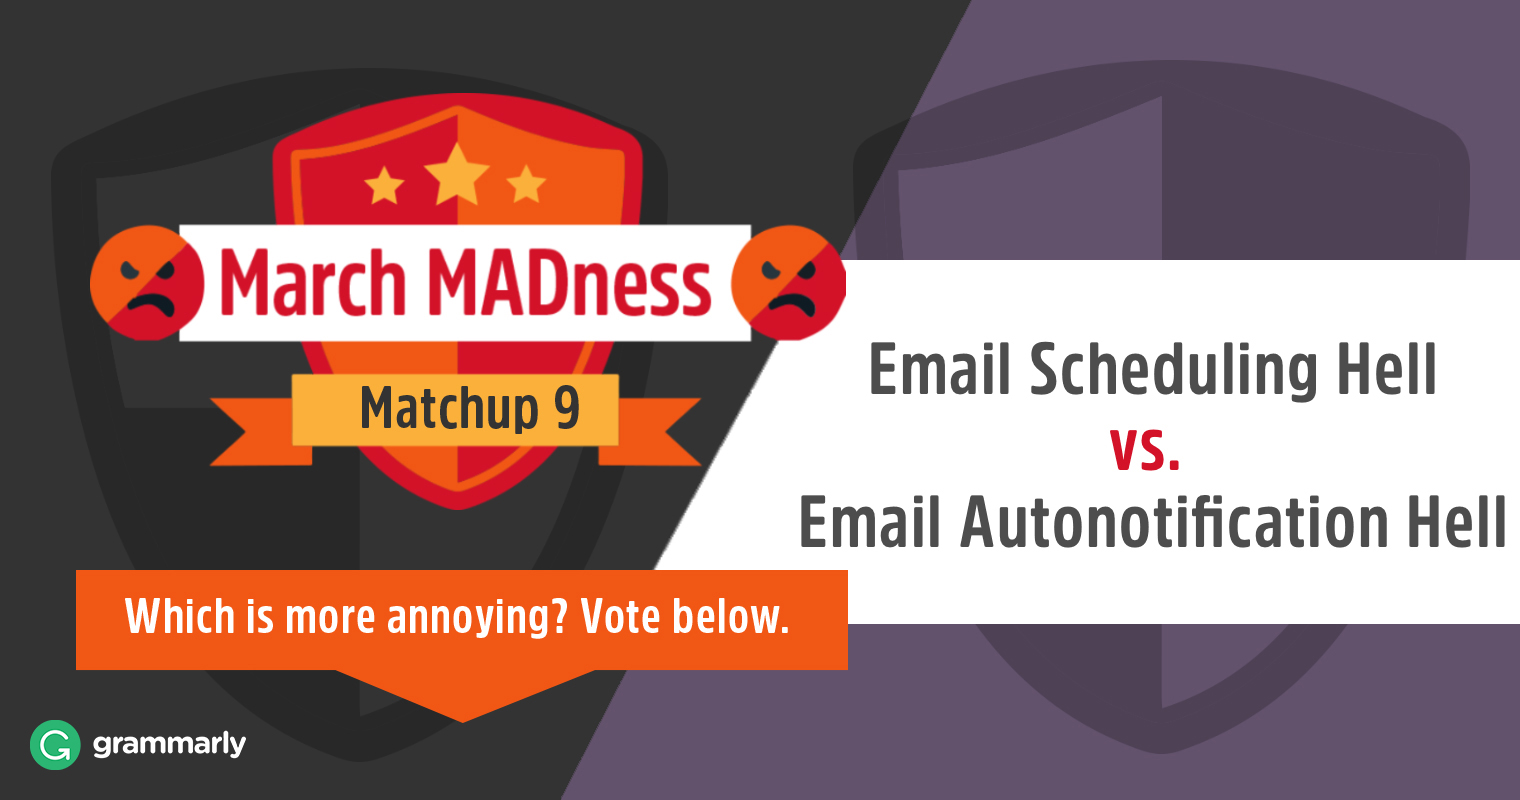 March MADness: Email Scheduling Hell vs. Email Autonotification Hell image